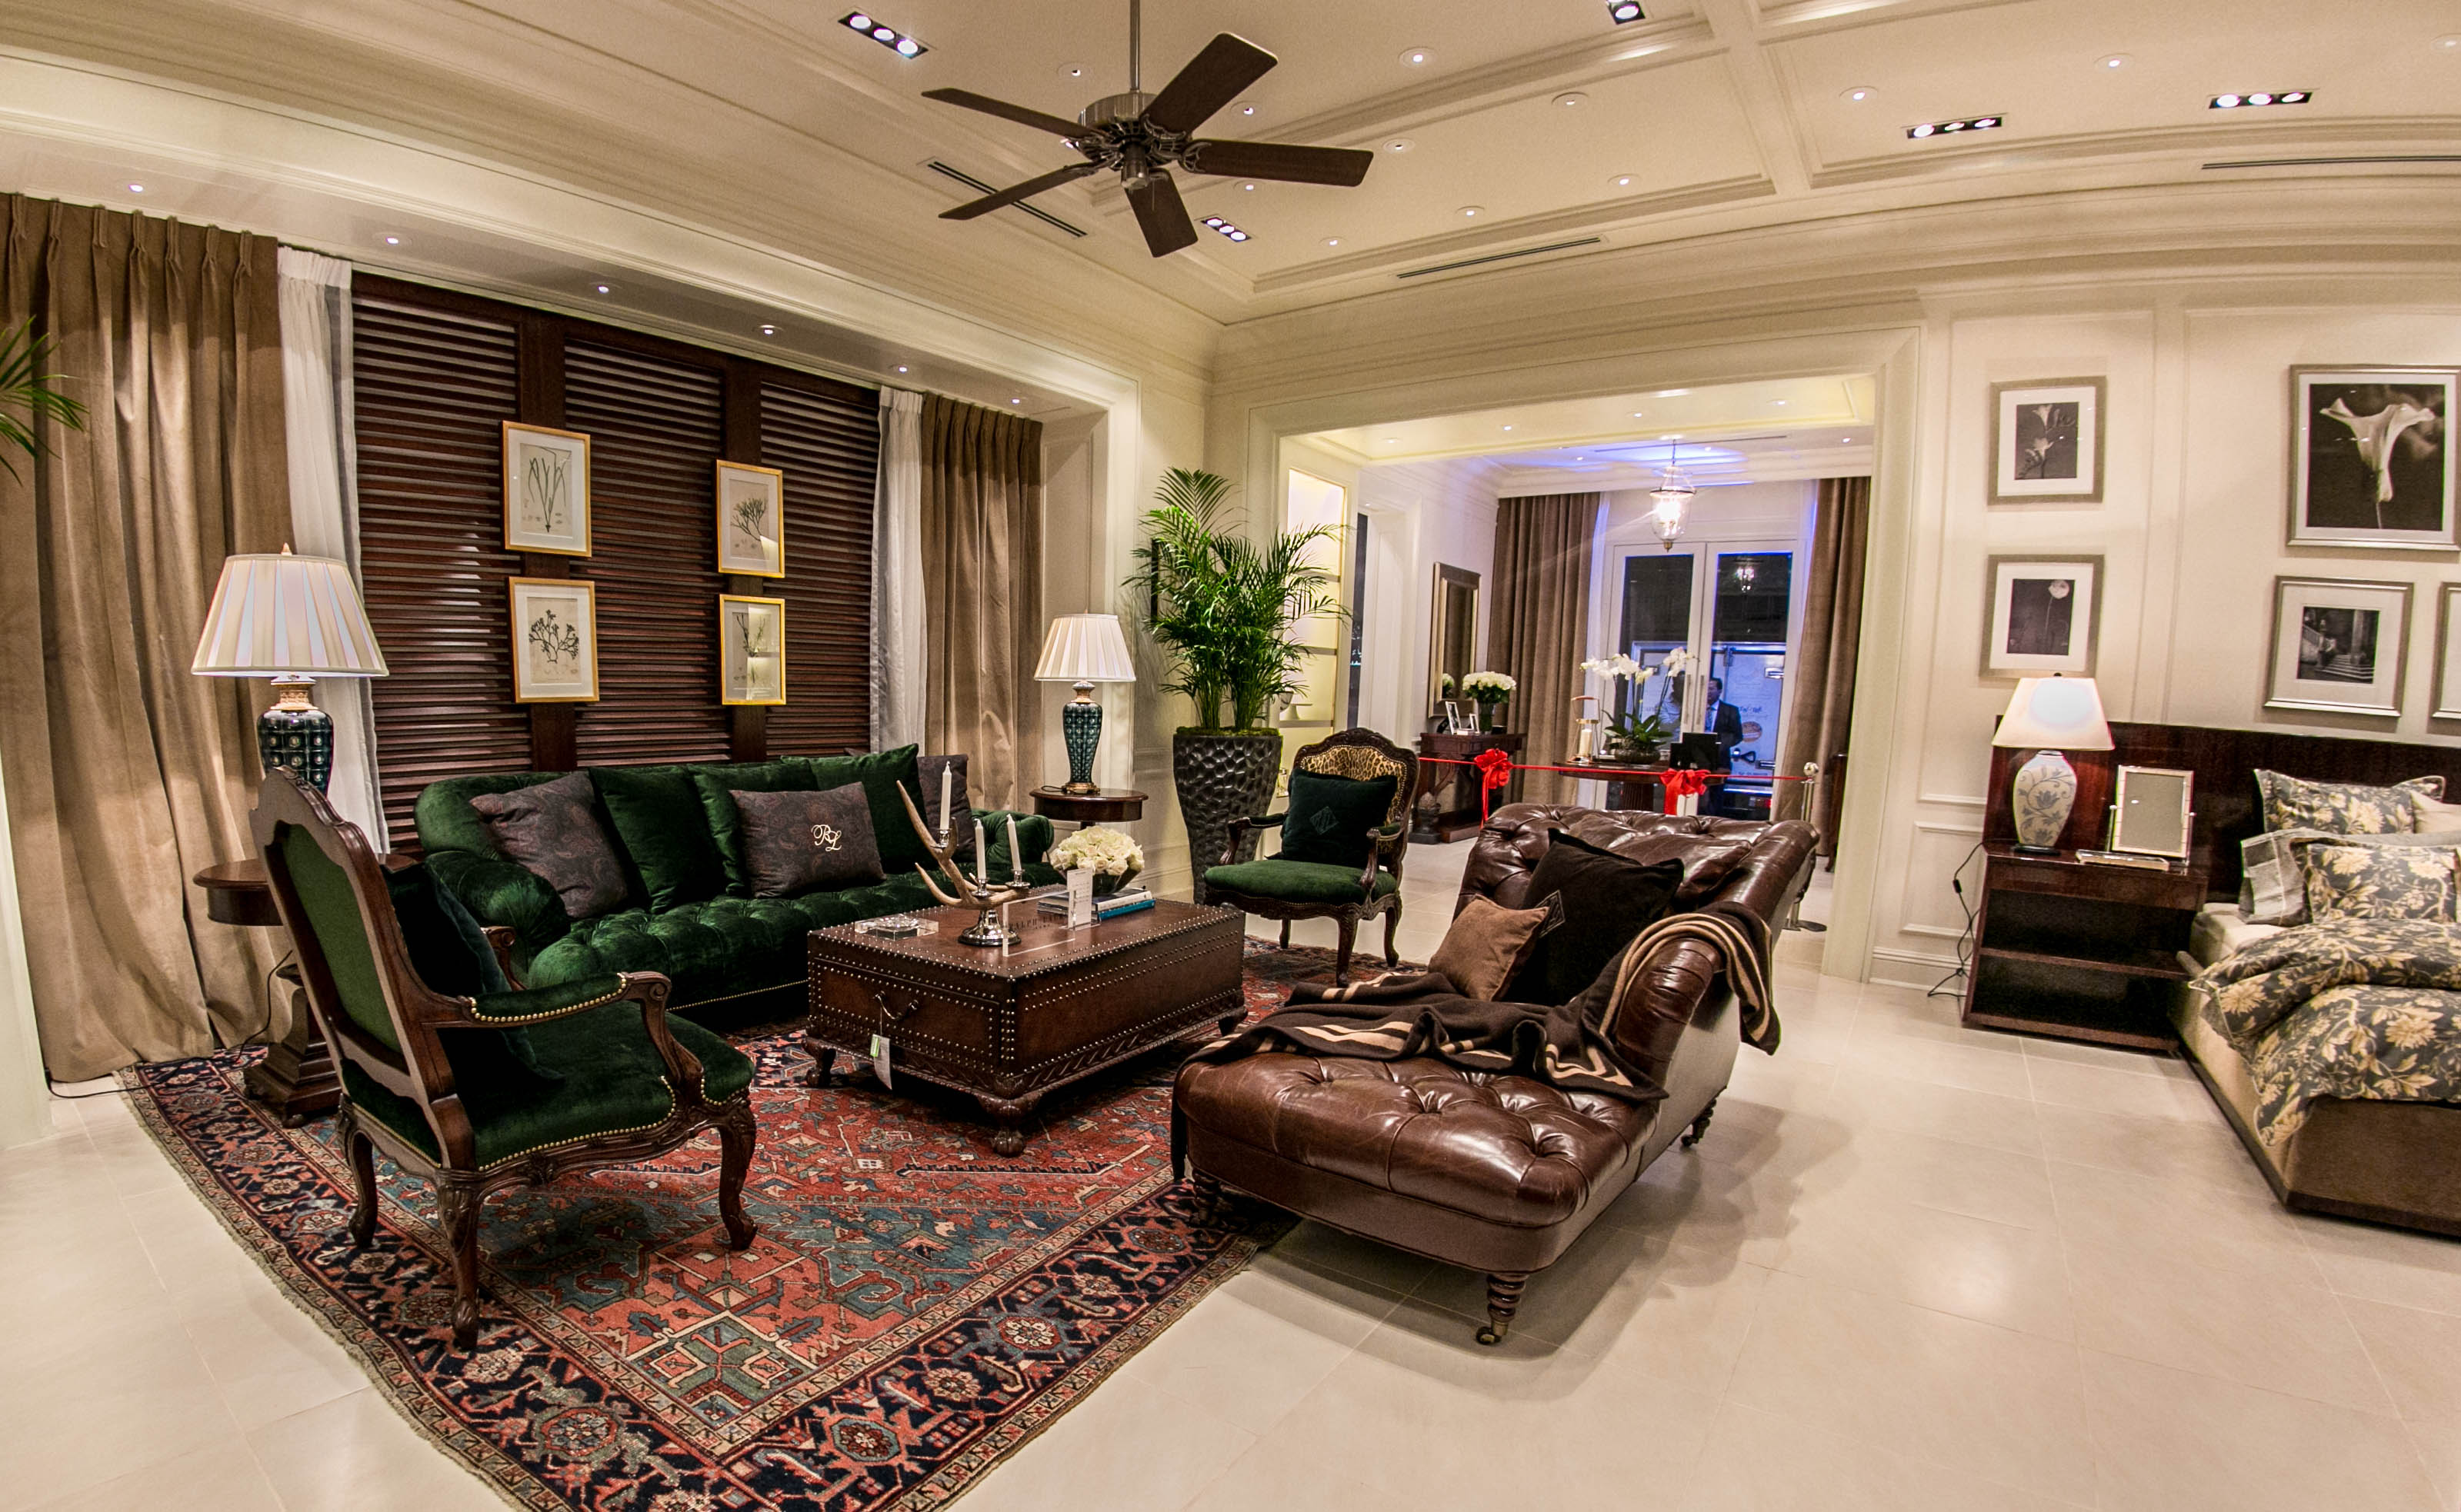 Ralph lauren home design homesfeed for Ralph lauren living room designs